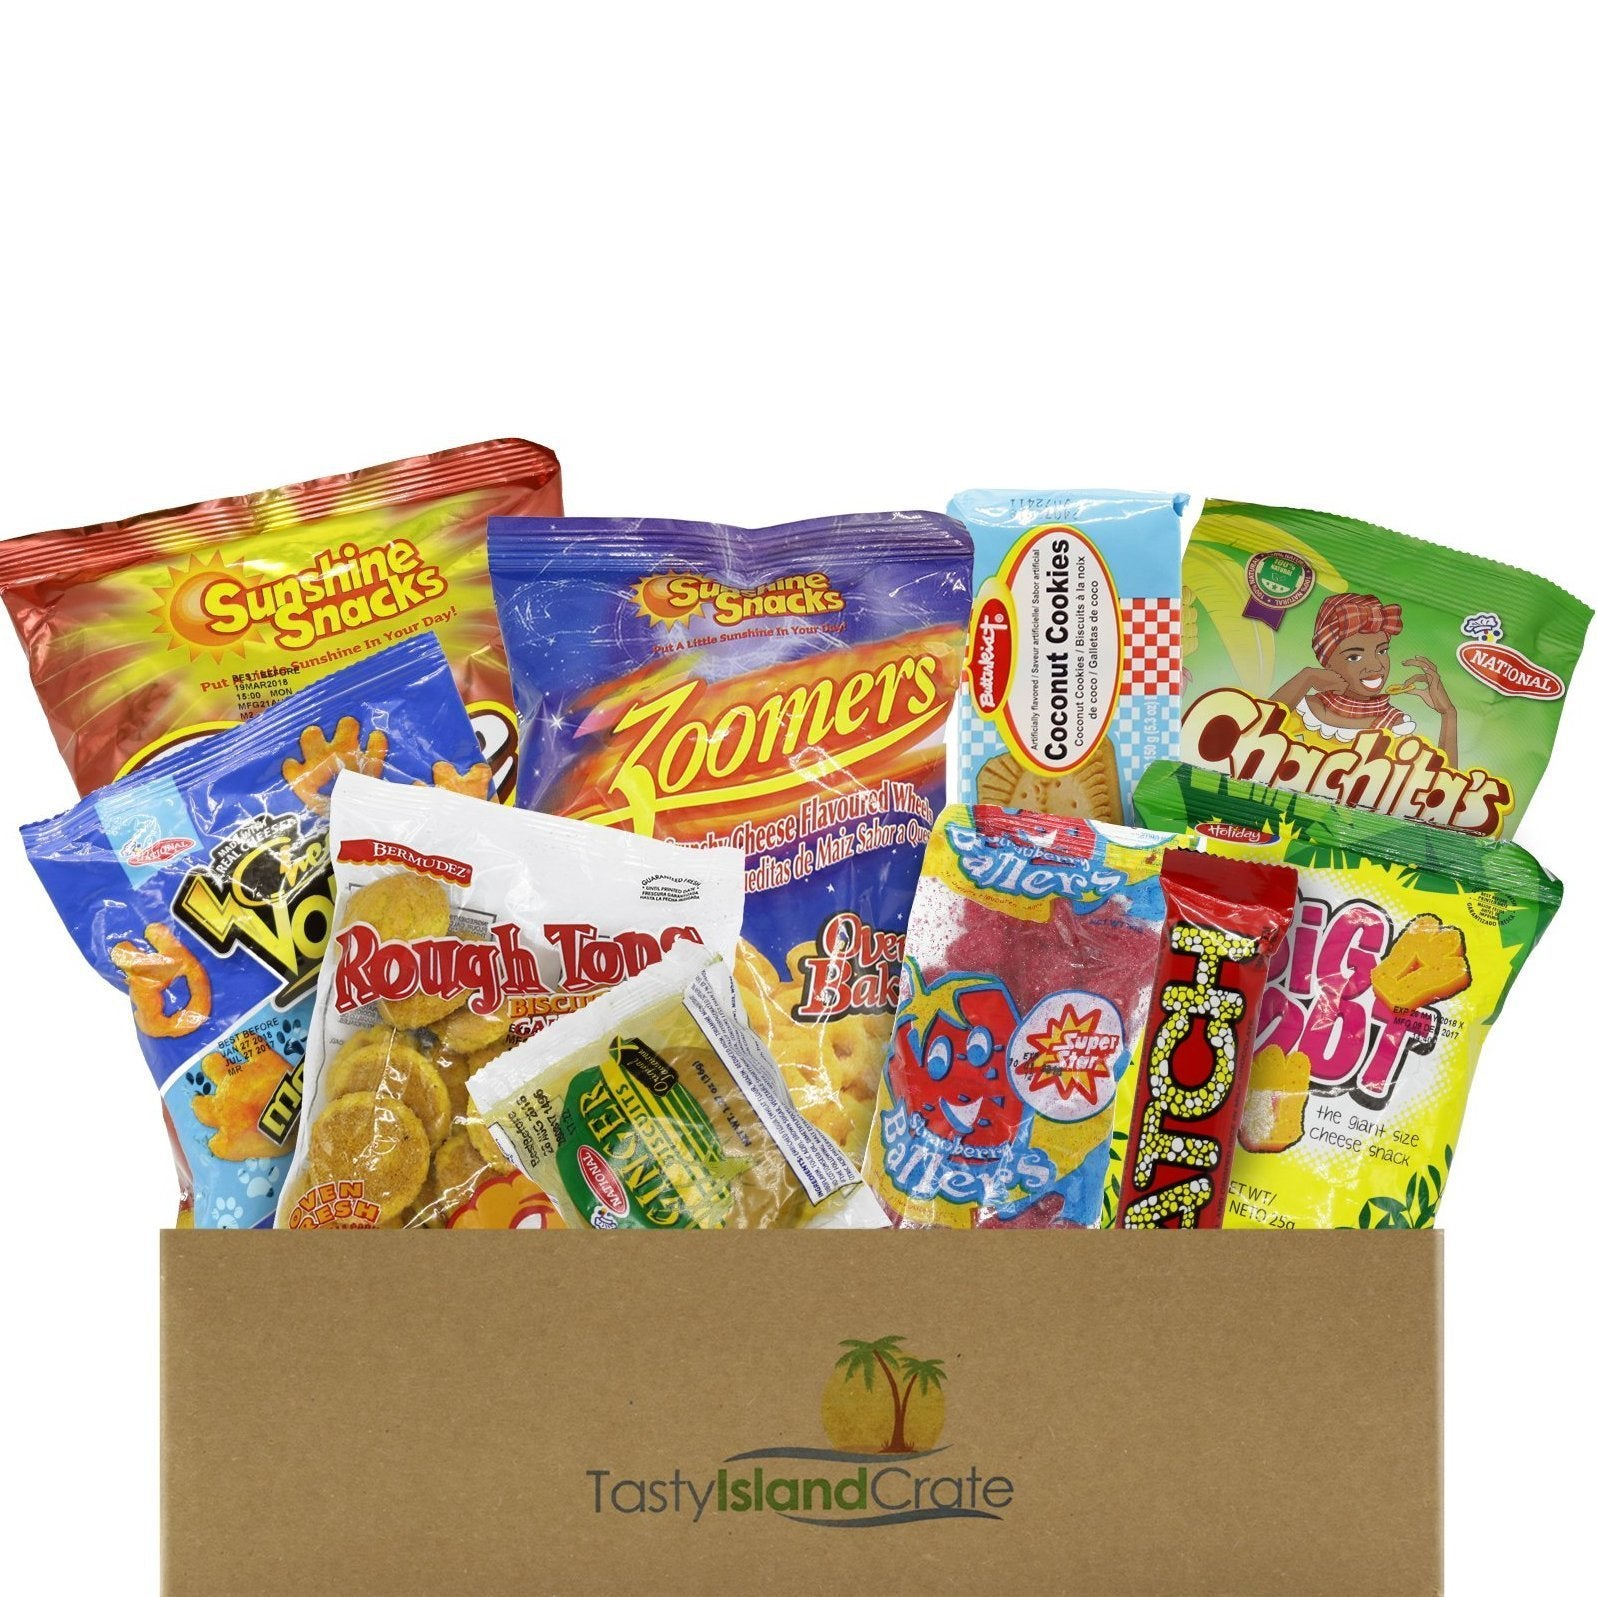 Original Island Crate - 10+ FULL SIZED Caribbean Snacks